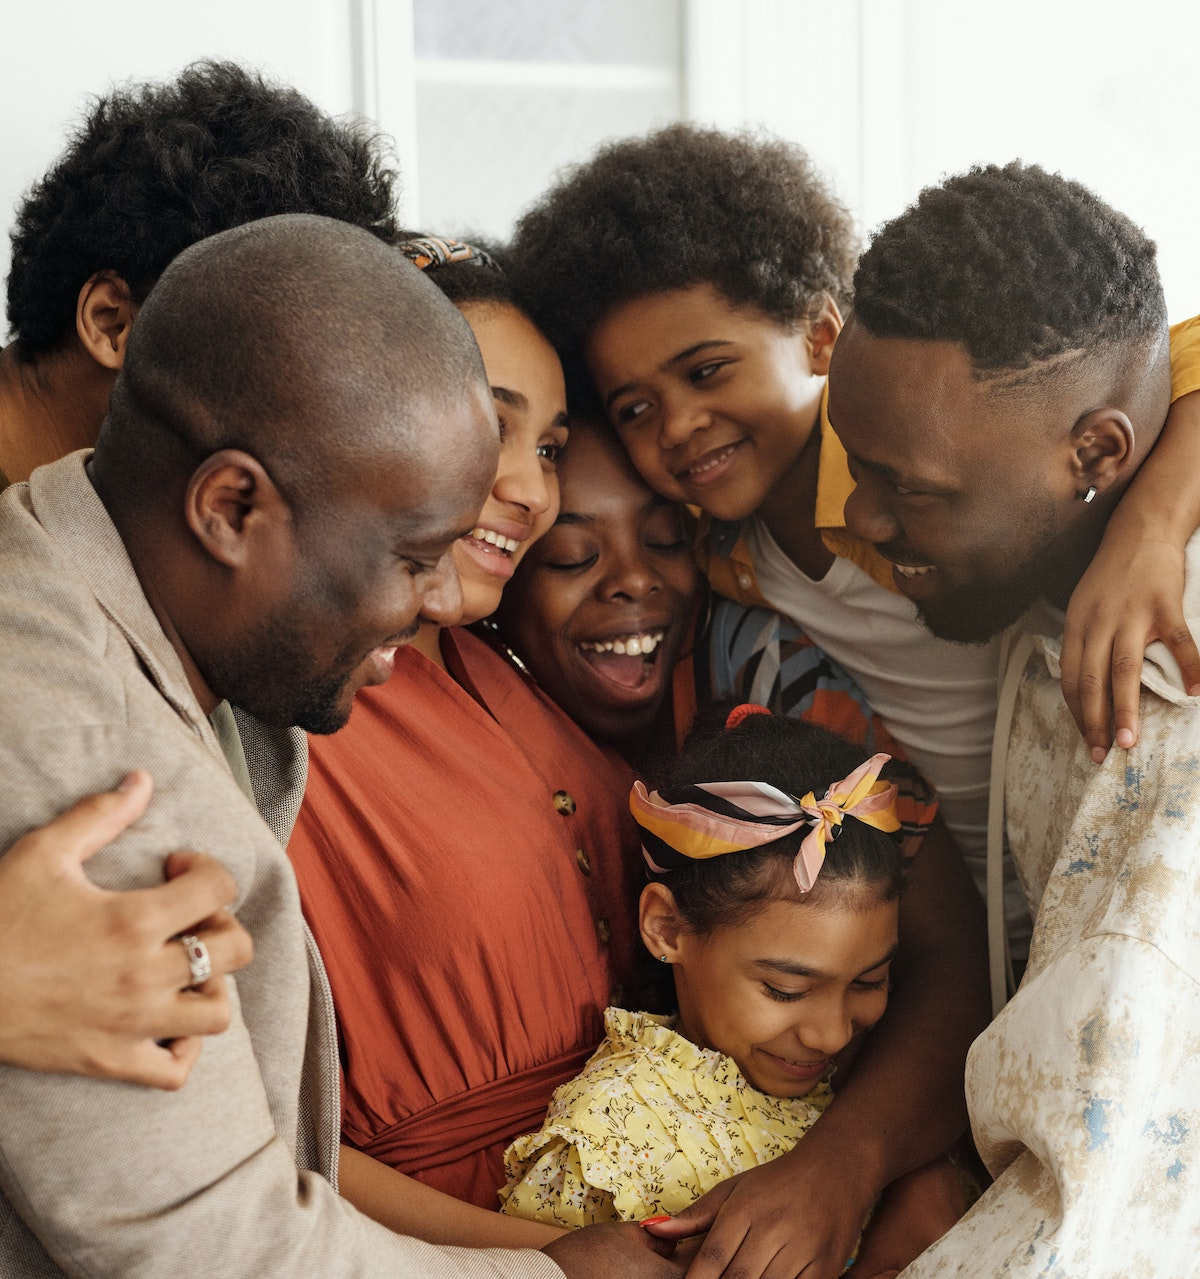 The Beauty of the Church: Intergenerational Relationships in Our Children's Lives